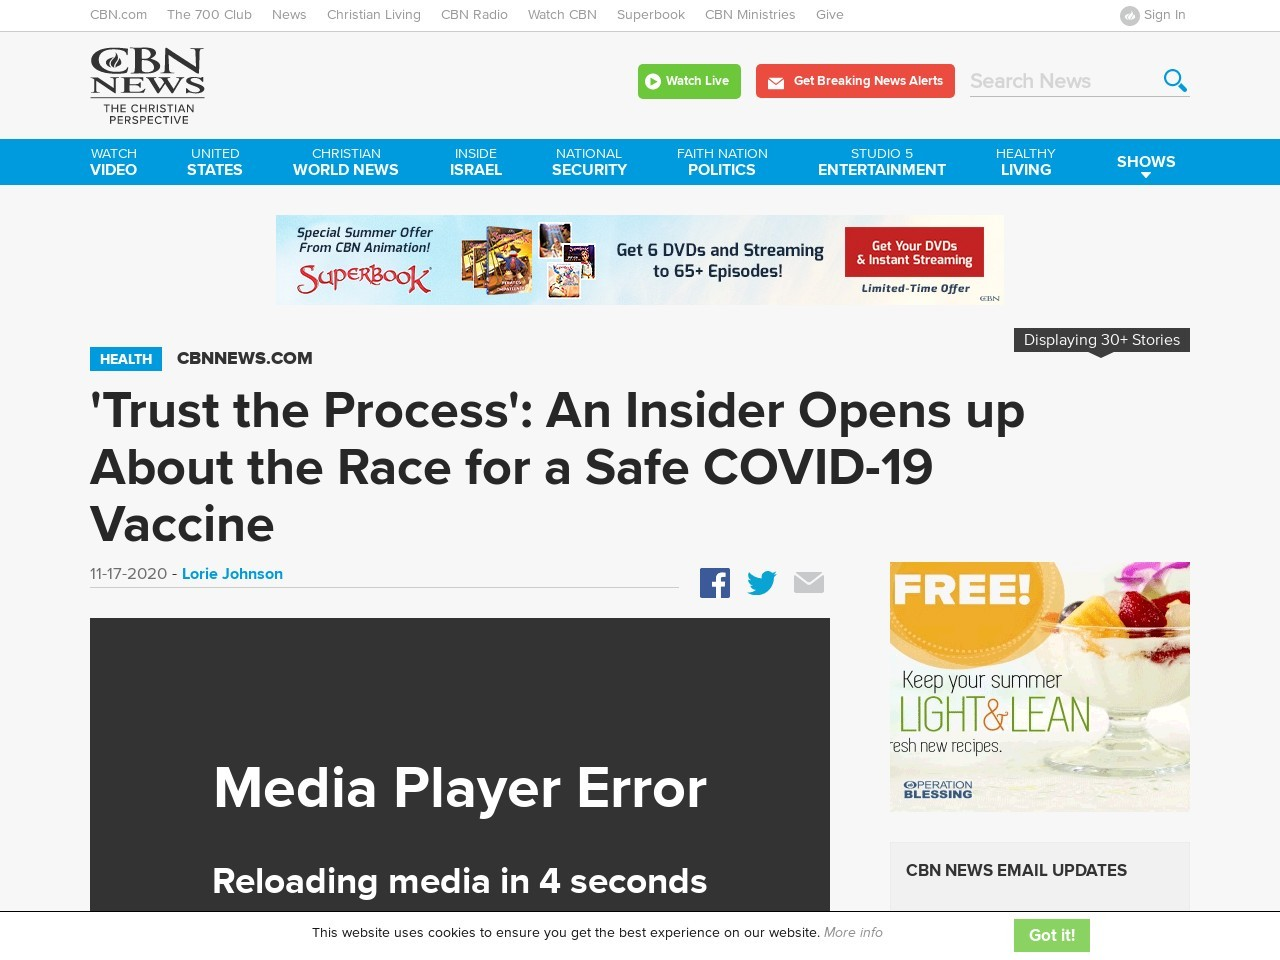 'Trust the Process': An Insider Opens up About the Race for a Safe COVID-19 Vaccine